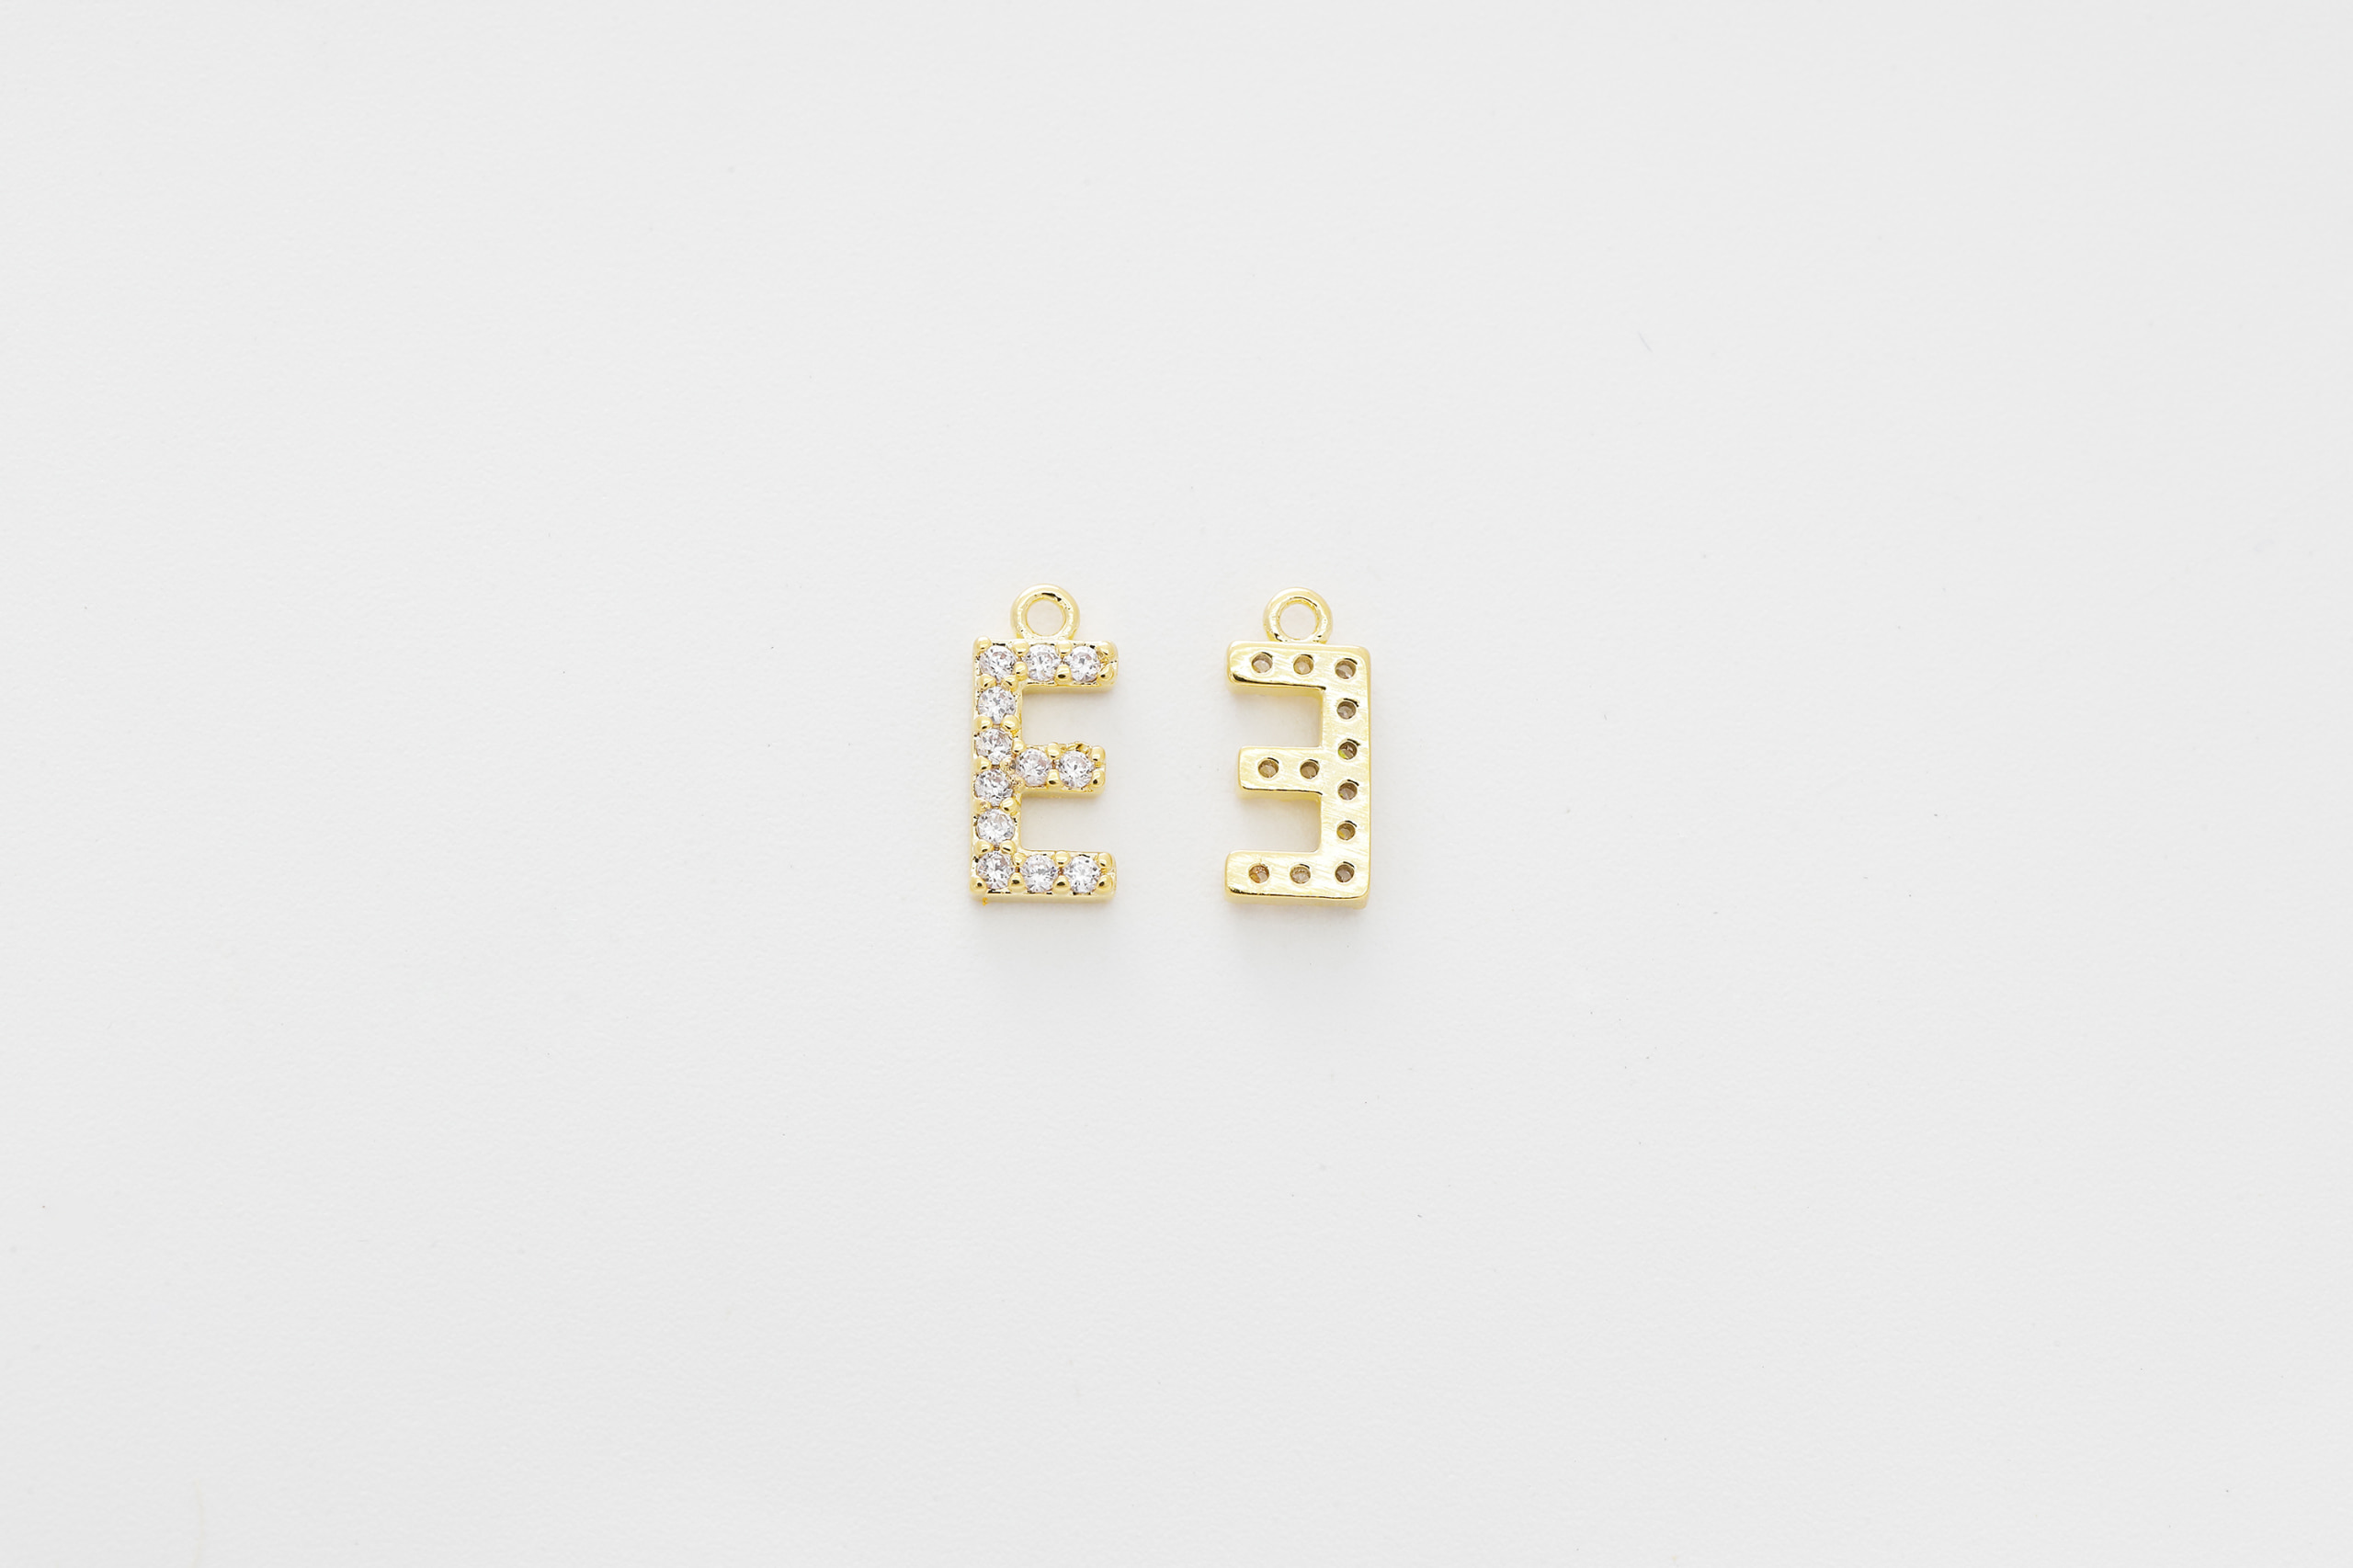 [AE-G20] Cubic capital letter charm E, Brass, Cubic zirconia, Nickel free, Jewelry making supplies, Alphabet charm, Initial charm, 1 piece